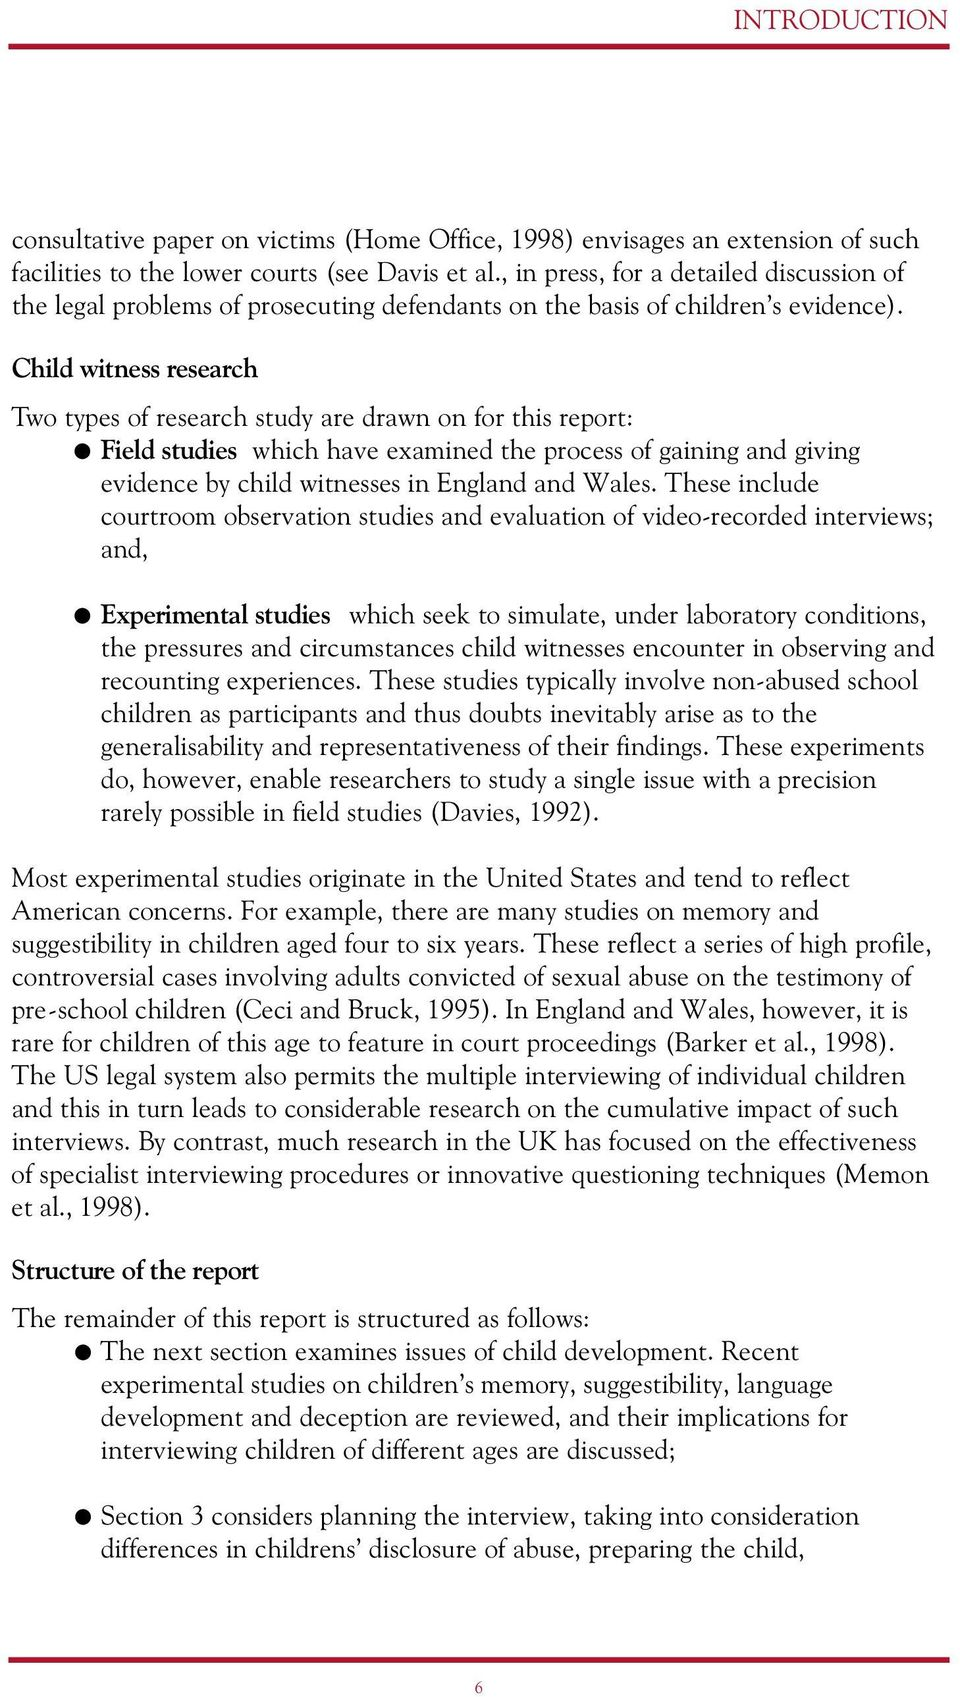 Child witness research Two types of research study are drawn on for this report: Field studies which have examined the process of gaining and giving evidence by child witnesses in England and Wales.